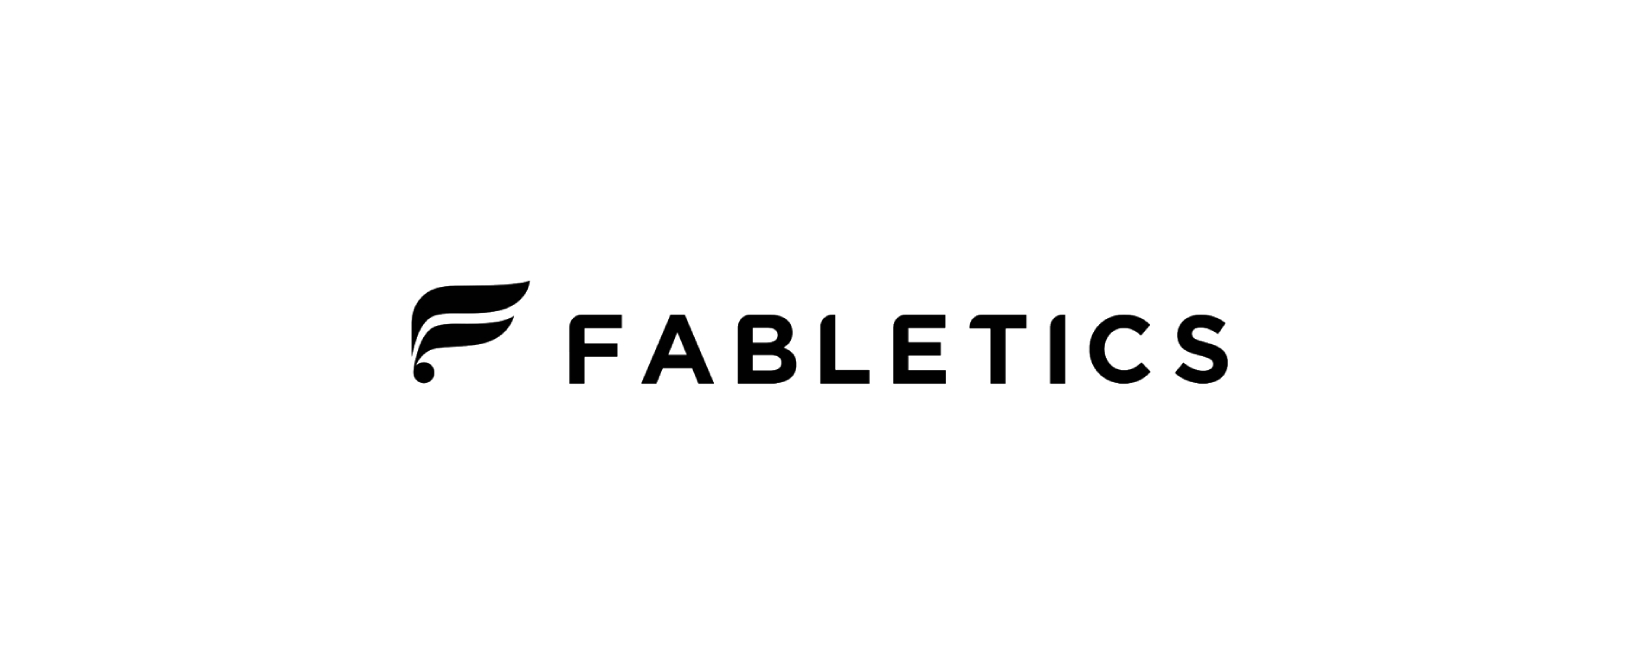 Fabletics Discount Code & Review 2021– Fabulous Athleisure